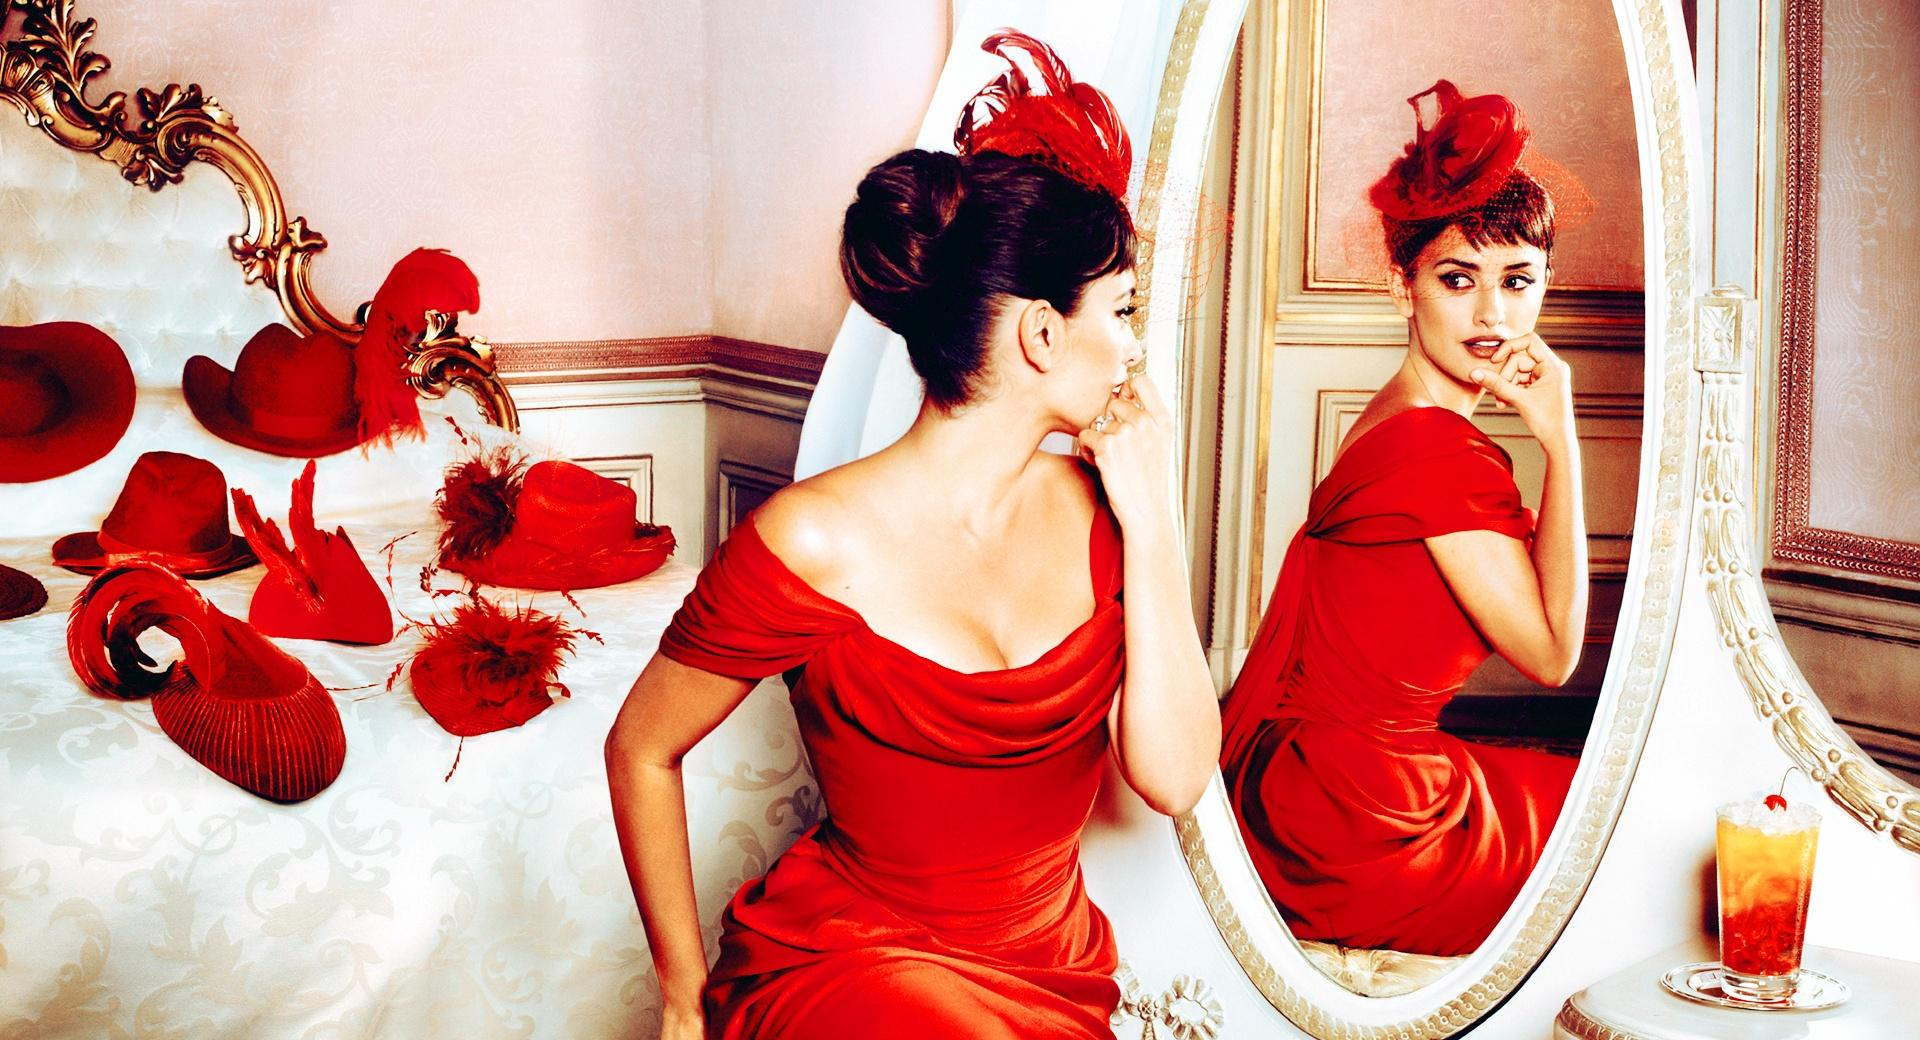 Penelope Cruz in Red Dress wallpapers HD quality